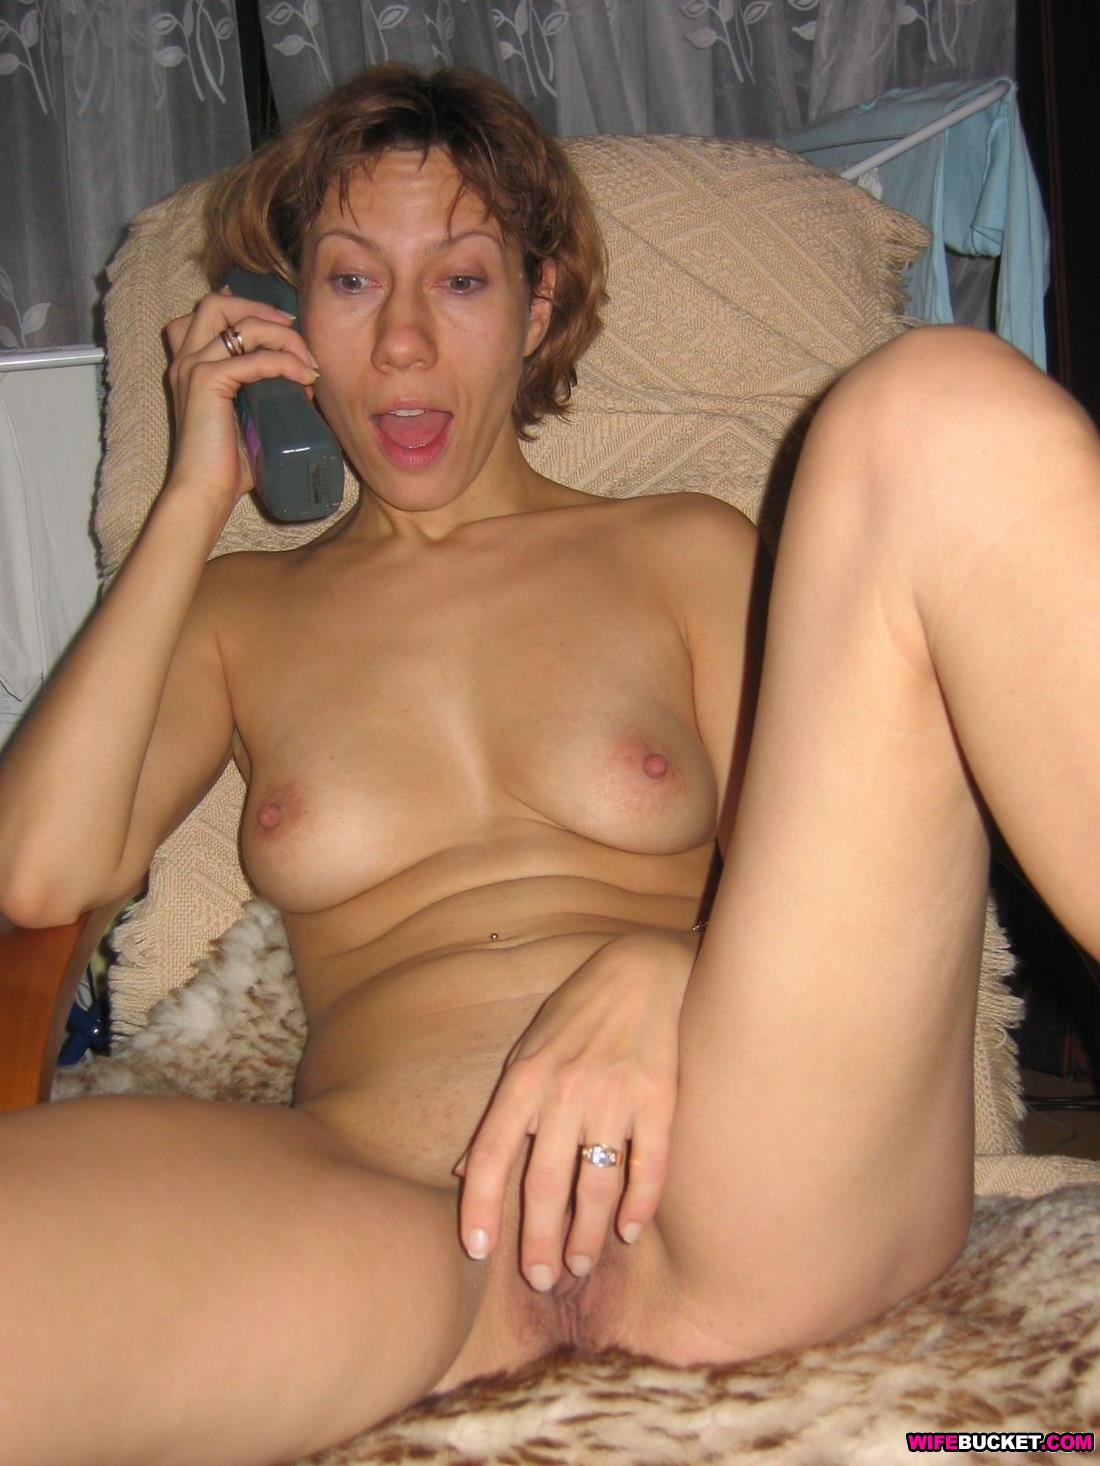 Naked wife cheating pics excited too